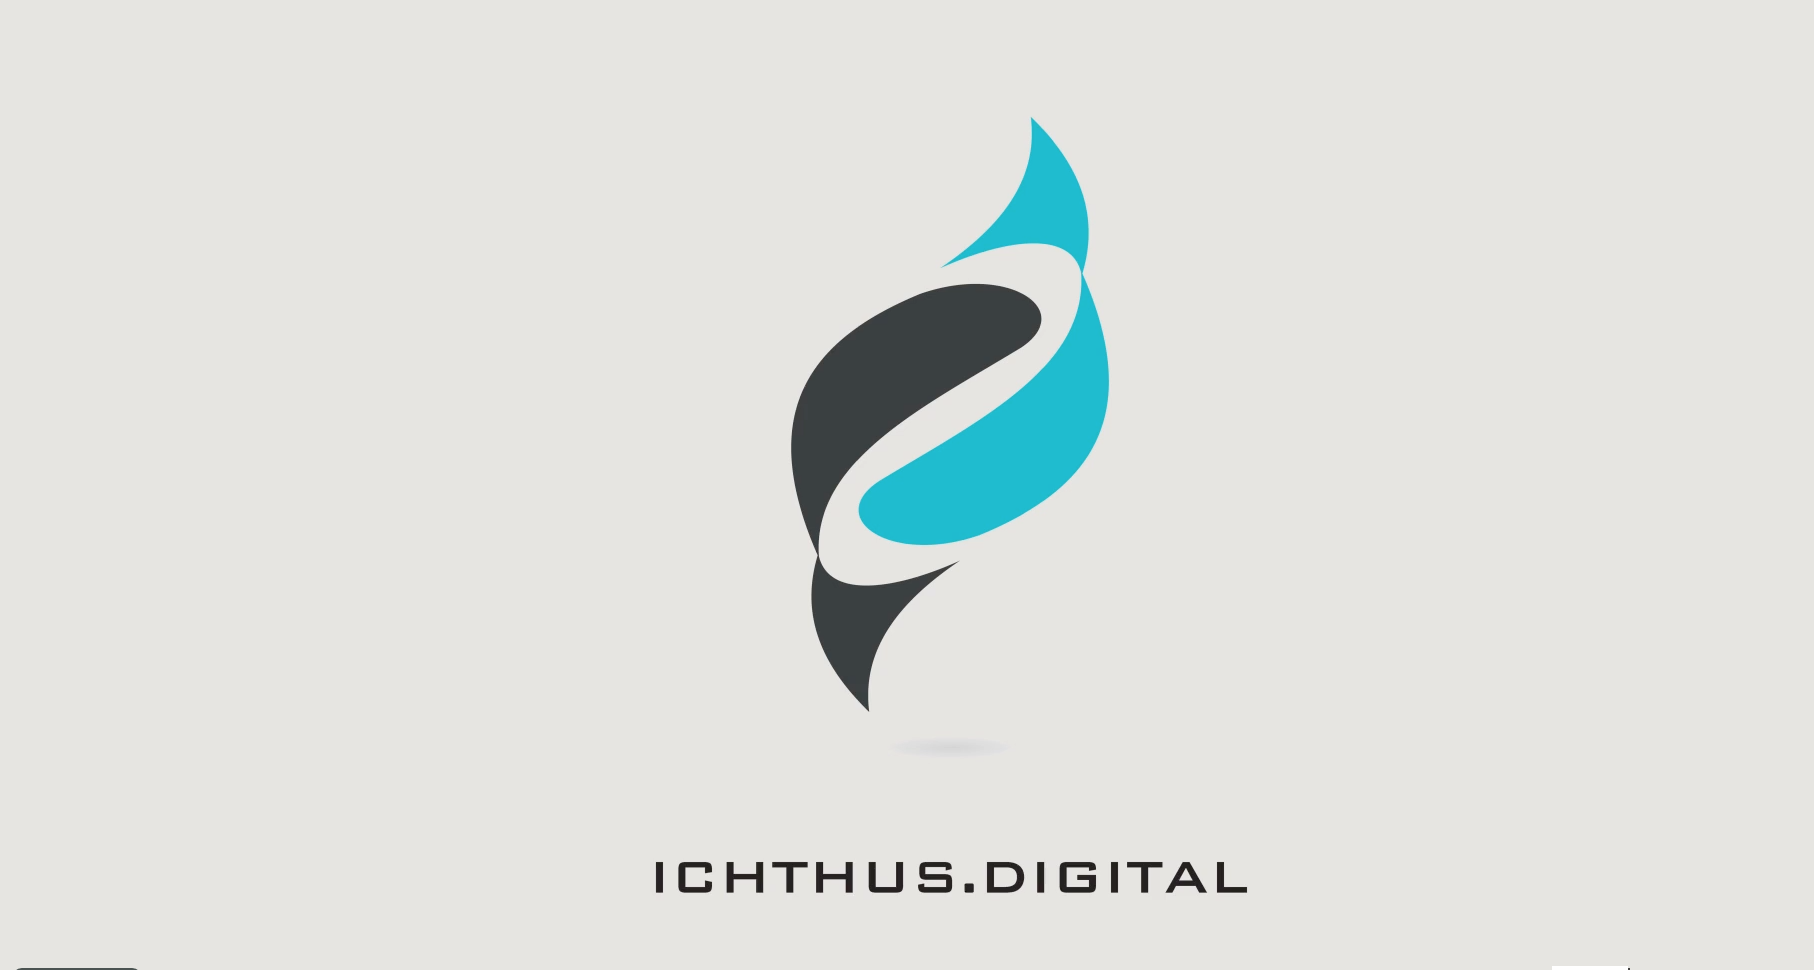 Ichthus Digital